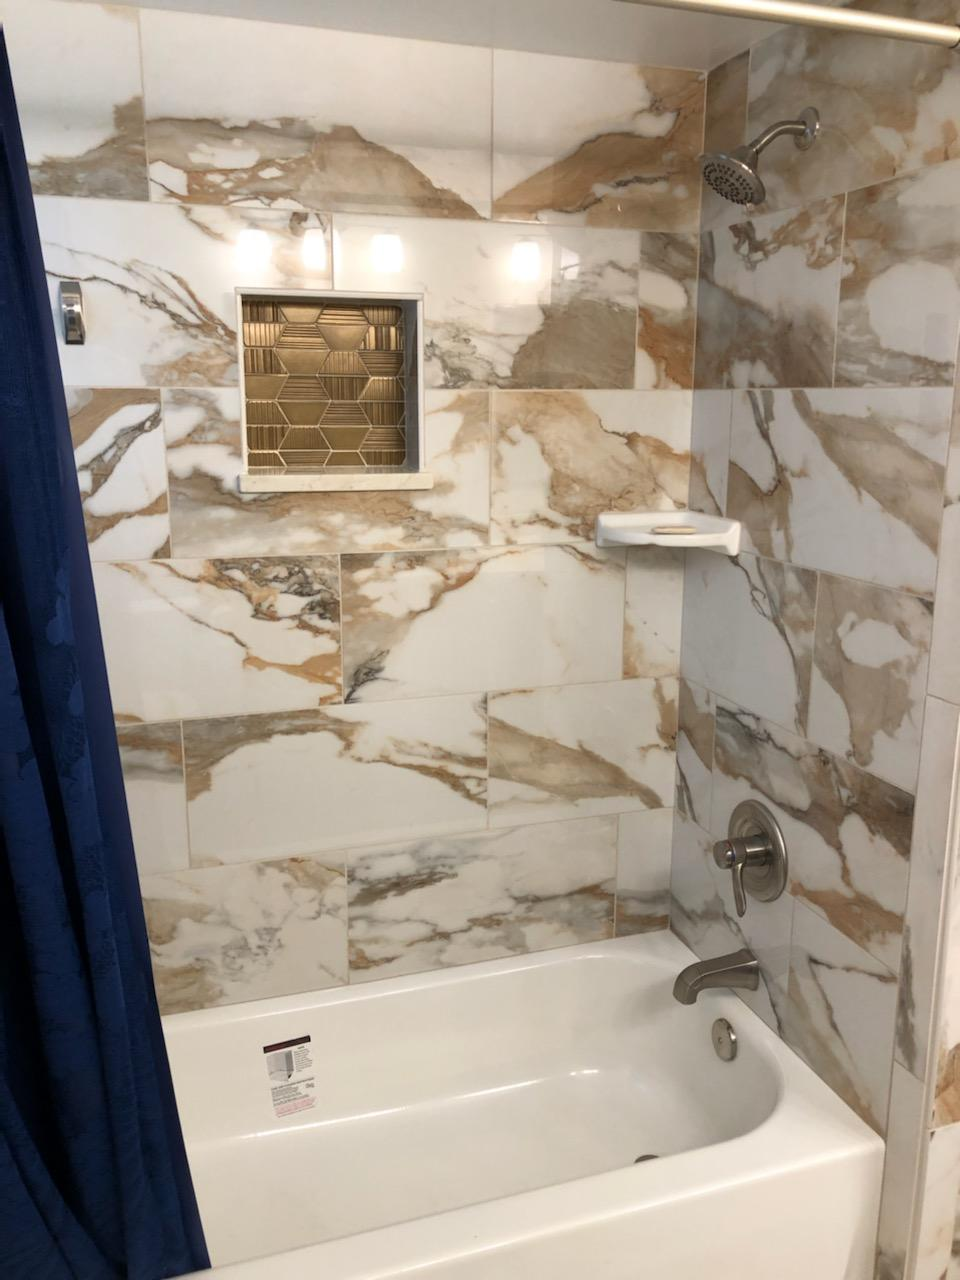 Dazzling shower tub combo with decorative gold mosaic niche.